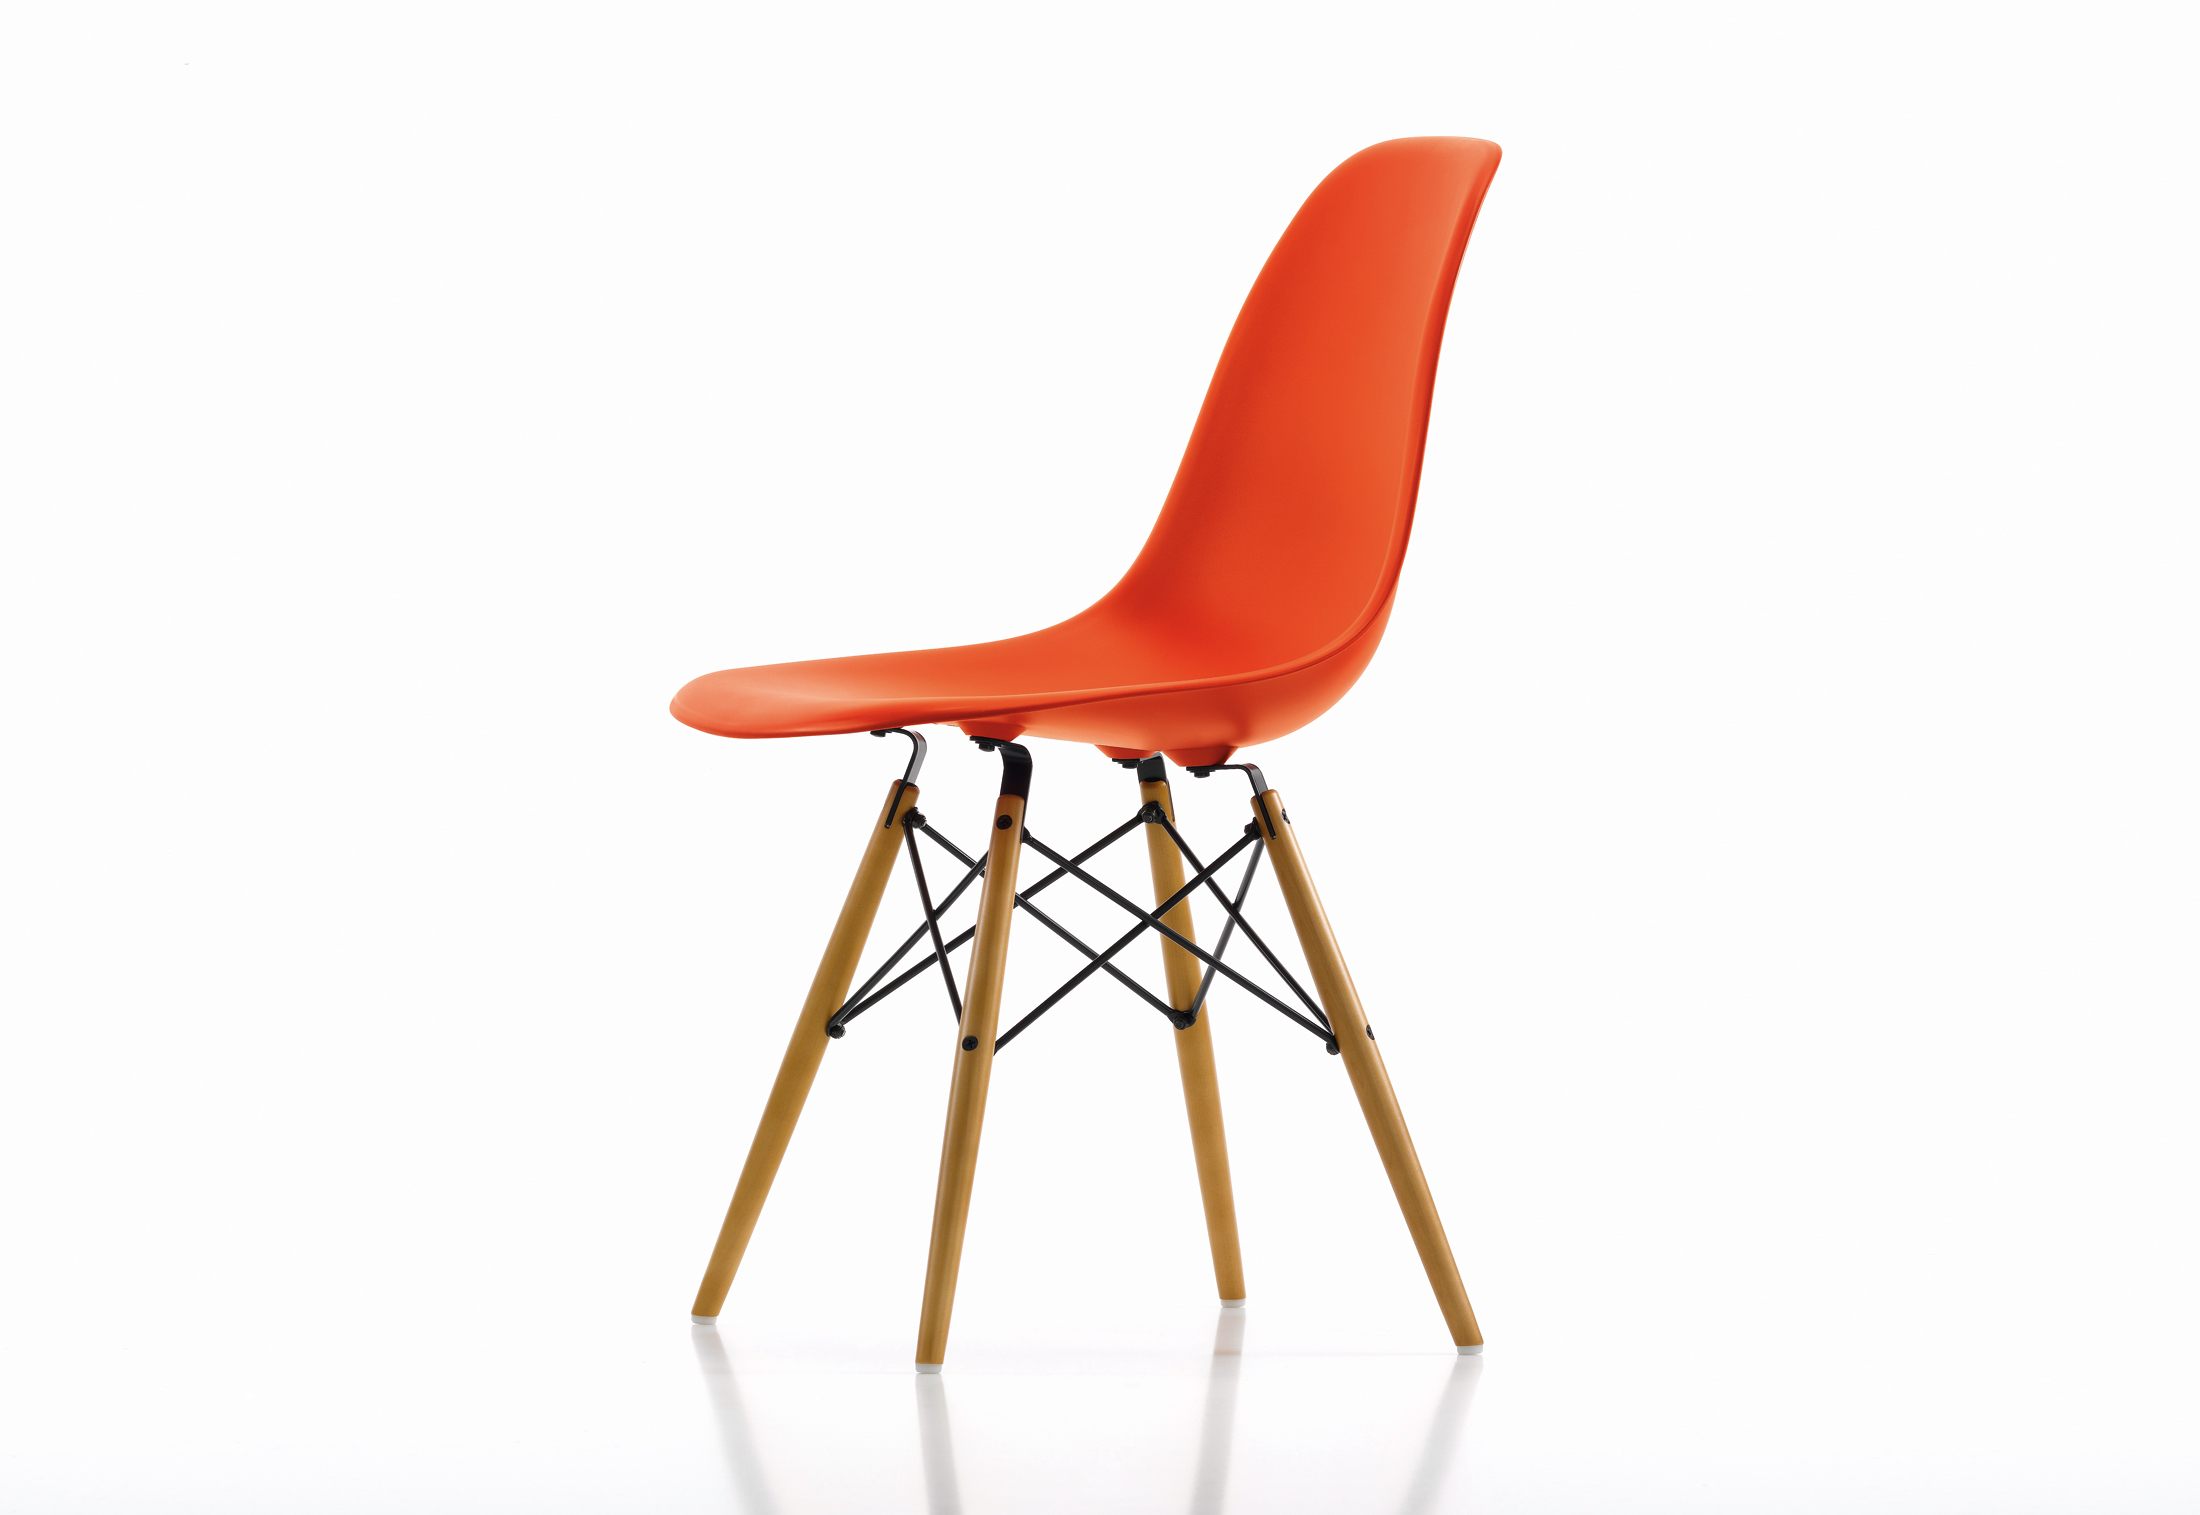 eames bucket chair wooden folding chairs plastic side dsw by vitra stylepark